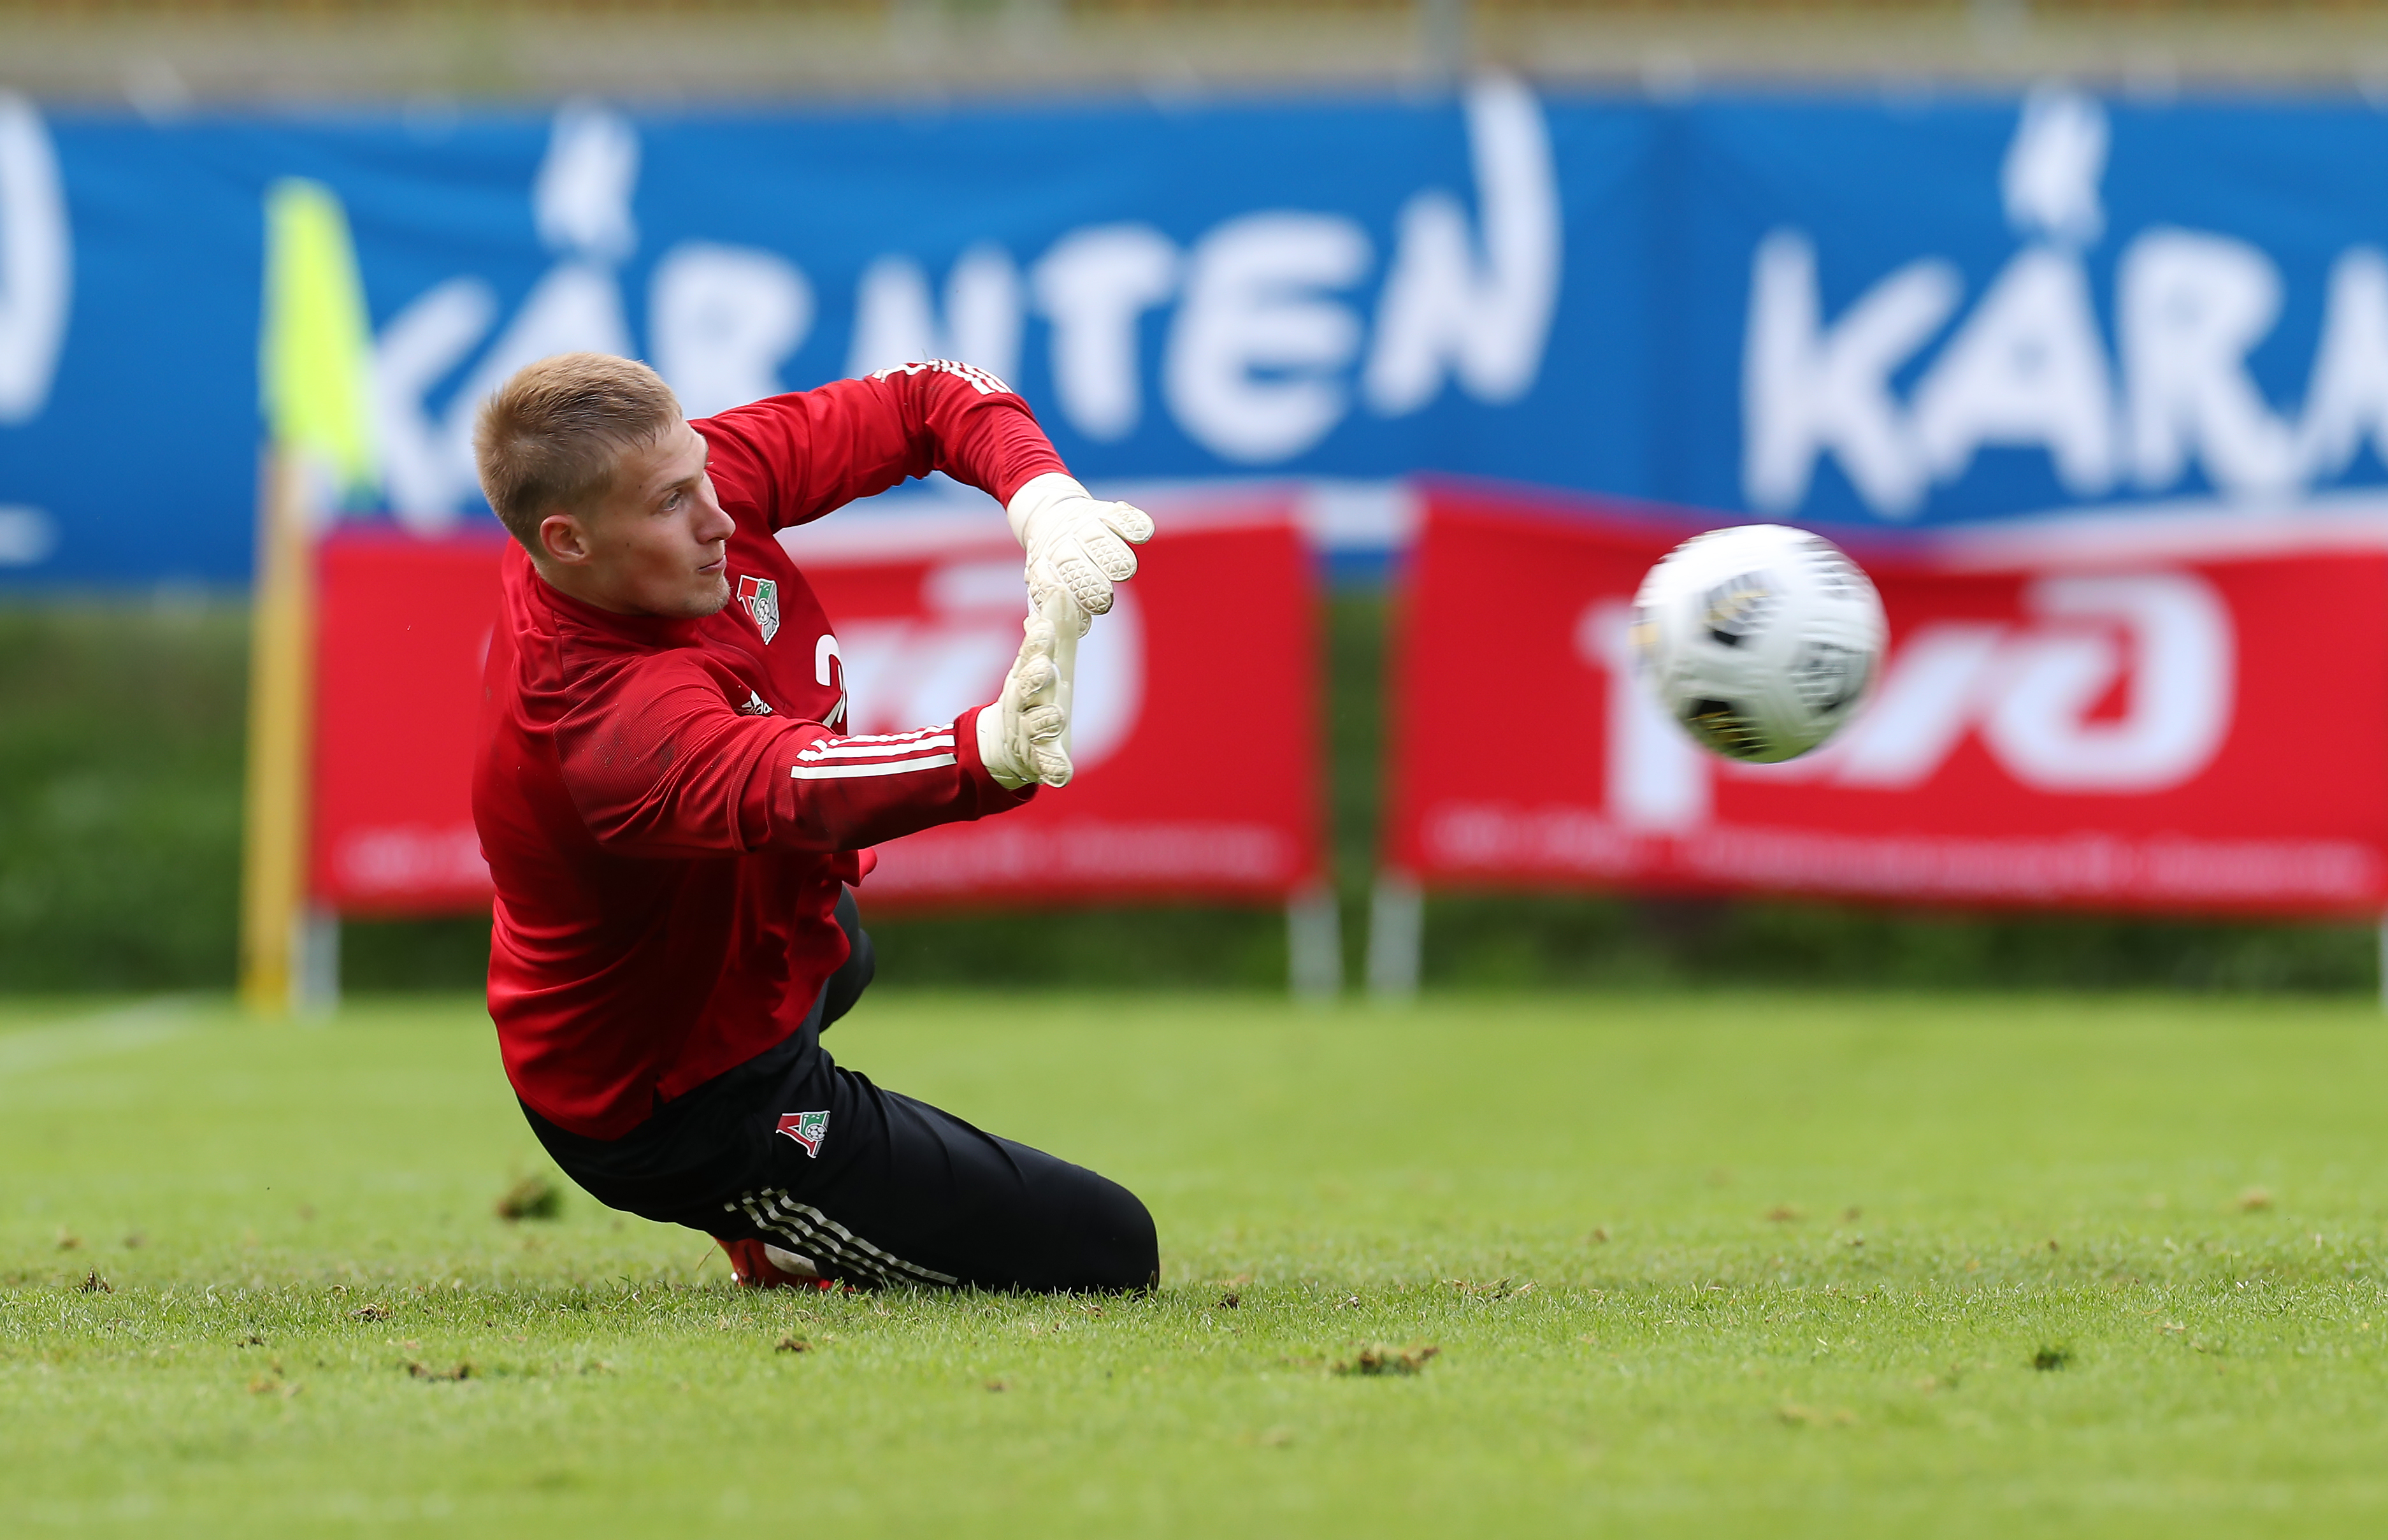 The twelfth day of training camp in Austria.